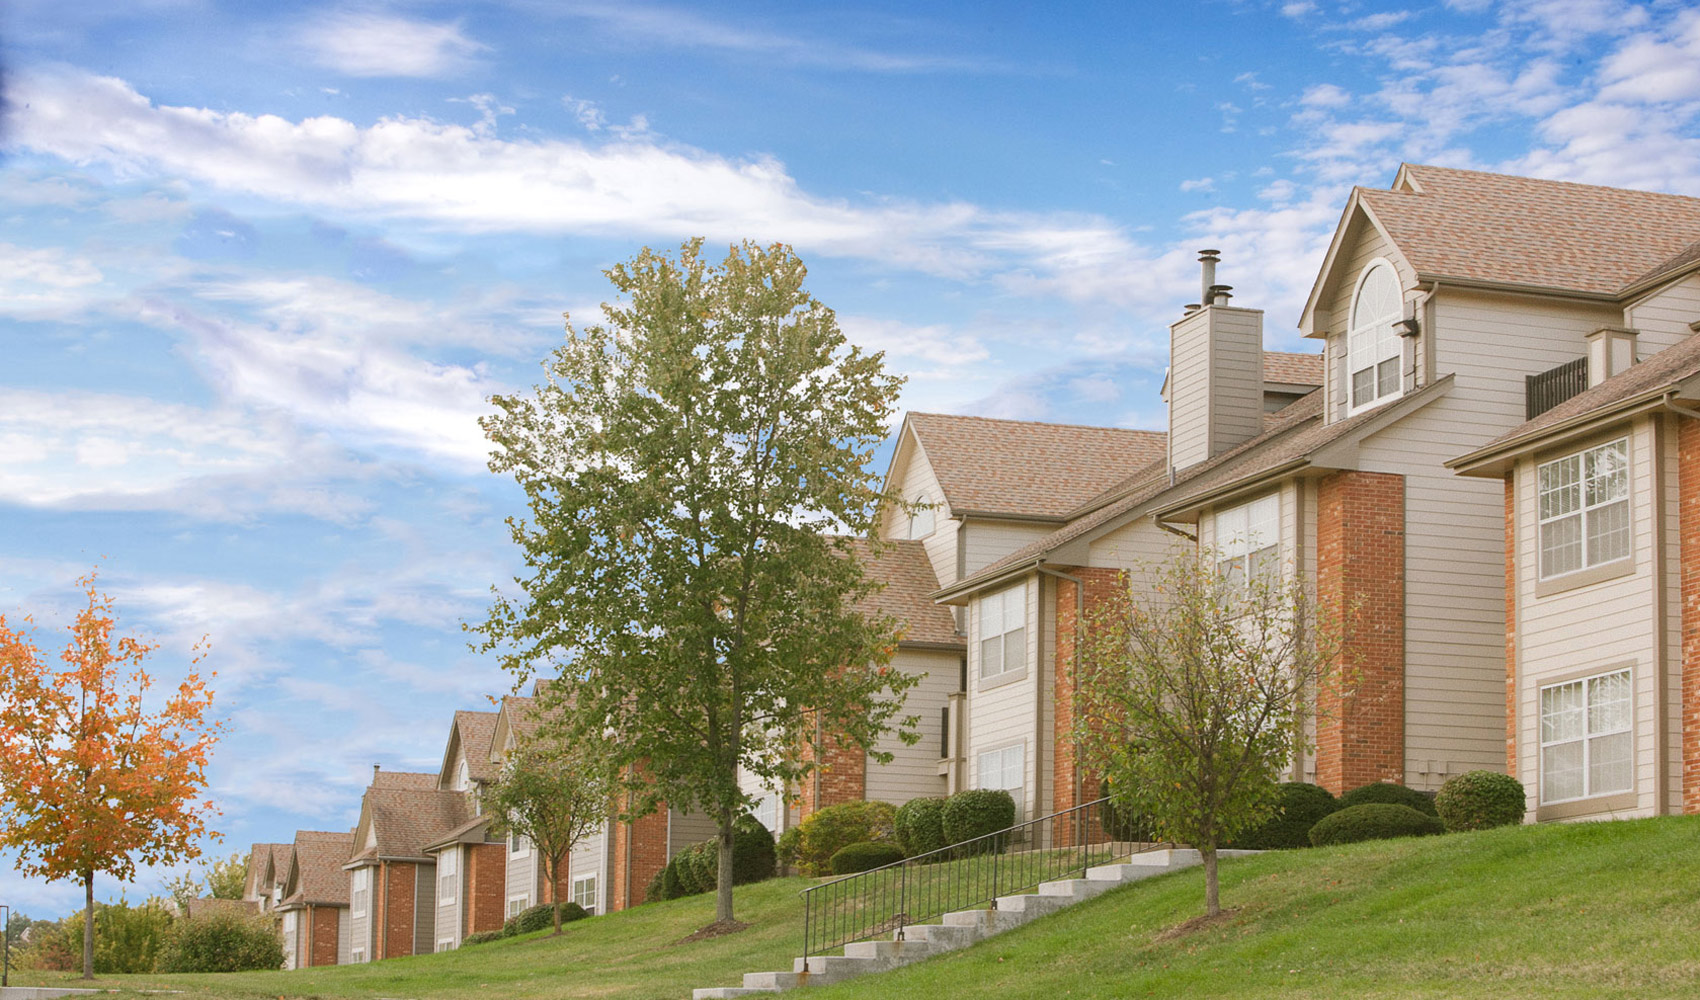 1 2 Bedroom Apartments For Rent In Fenton Mo Polo Downs Apartments In Fenton Mo